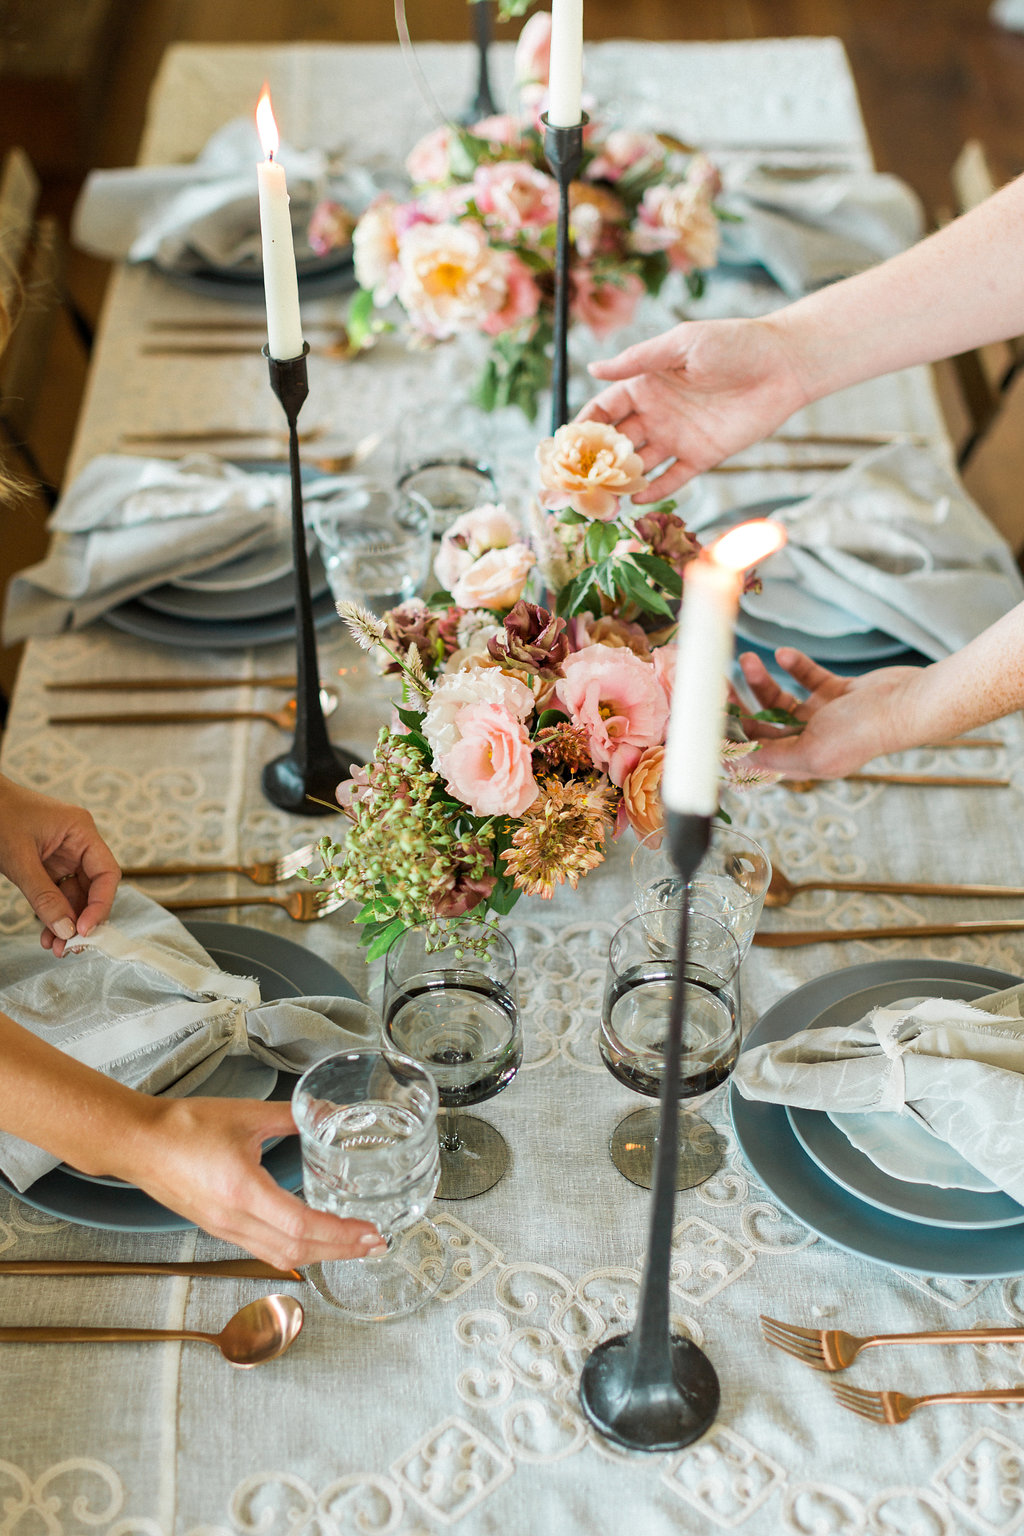 peachy pink wedding tablescapes - https://ruffledblog.com/cloudy-day-wedding-inspiration-with-a-hand-painted-bridal-gown